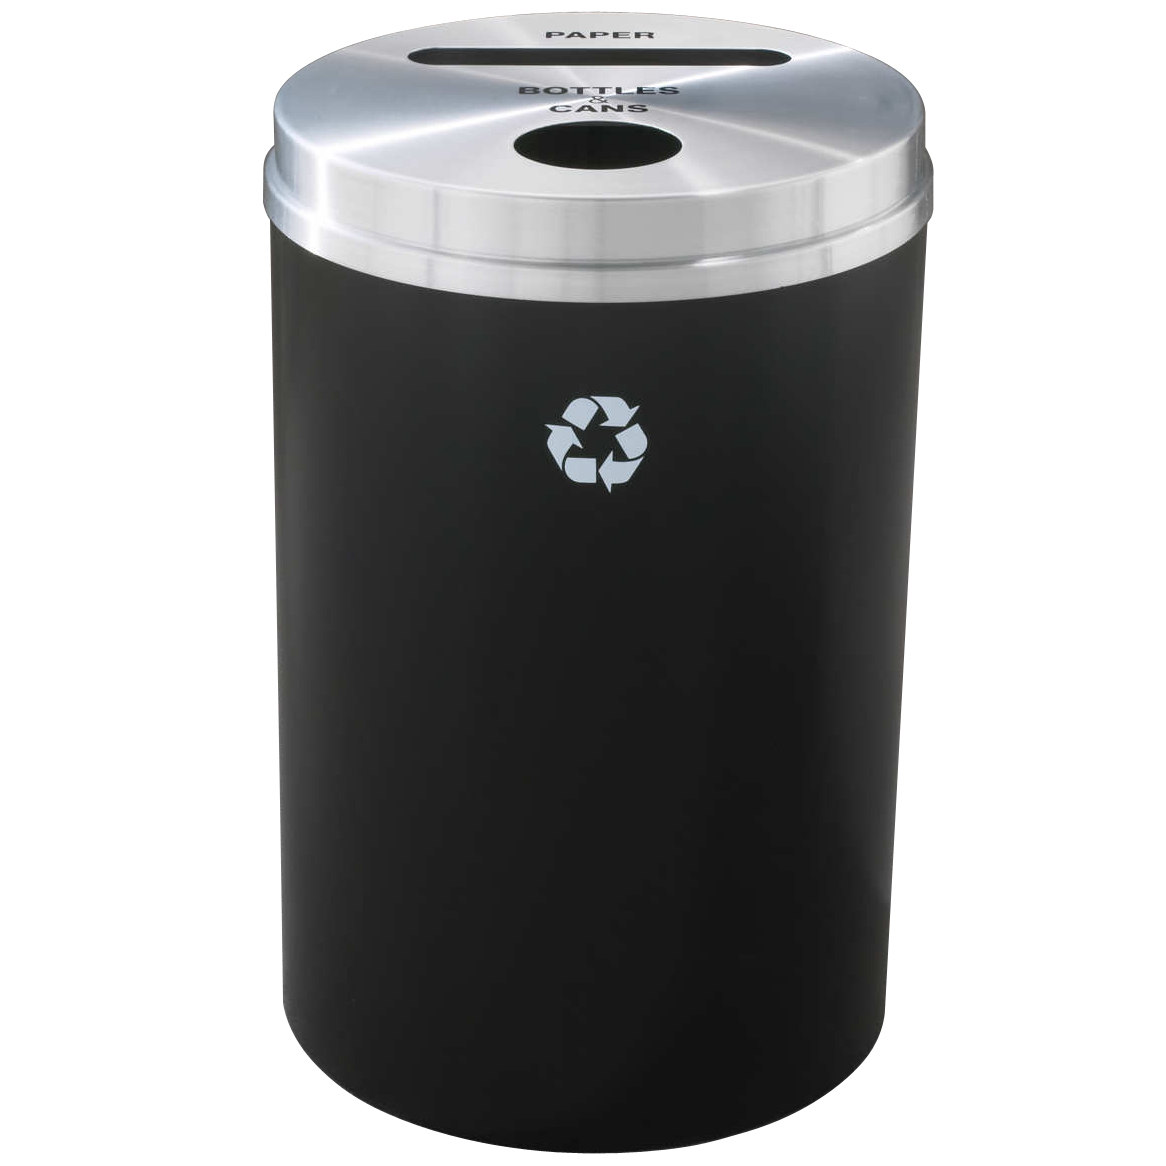 glaro dual opening trash collection bin trash cans warehouse. Black Bedroom Furniture Sets. Home Design Ideas